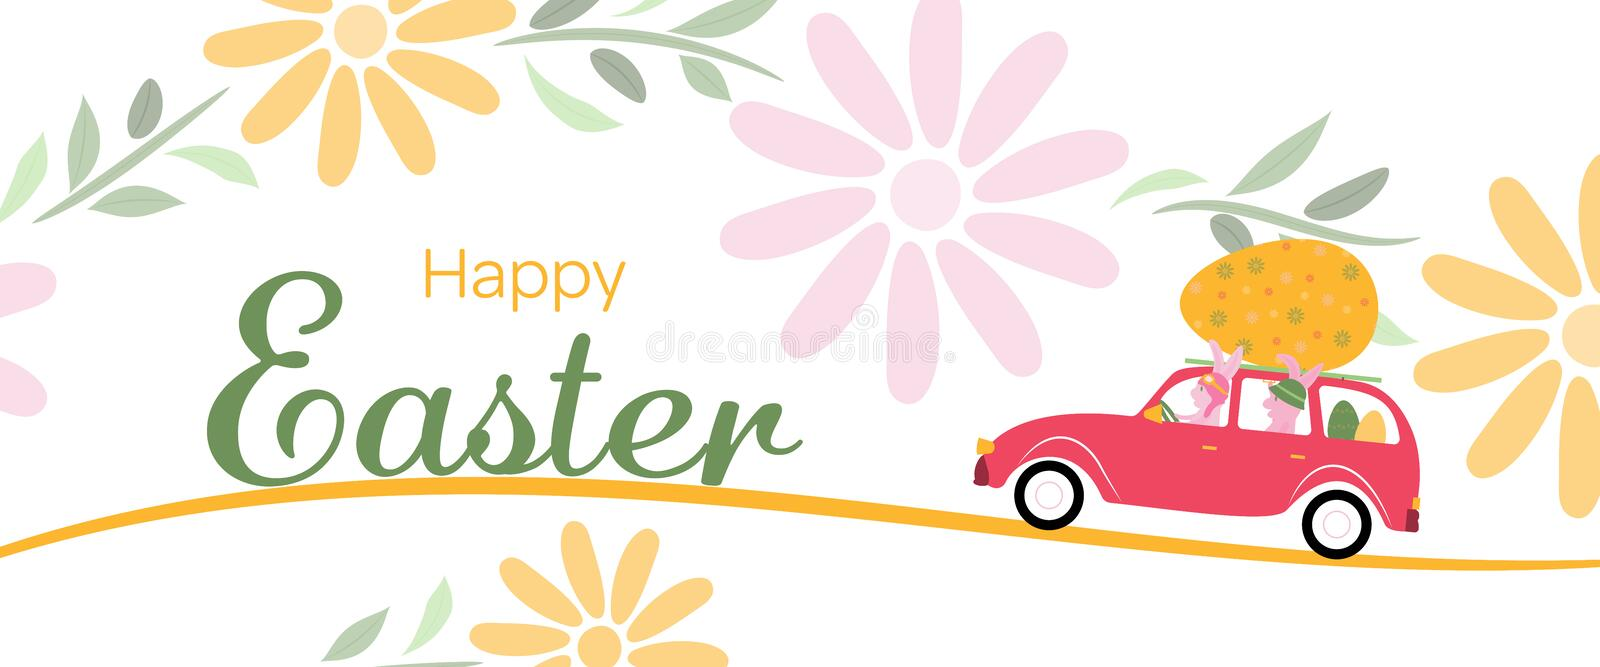 Happy Easter - Bunny stock illustration